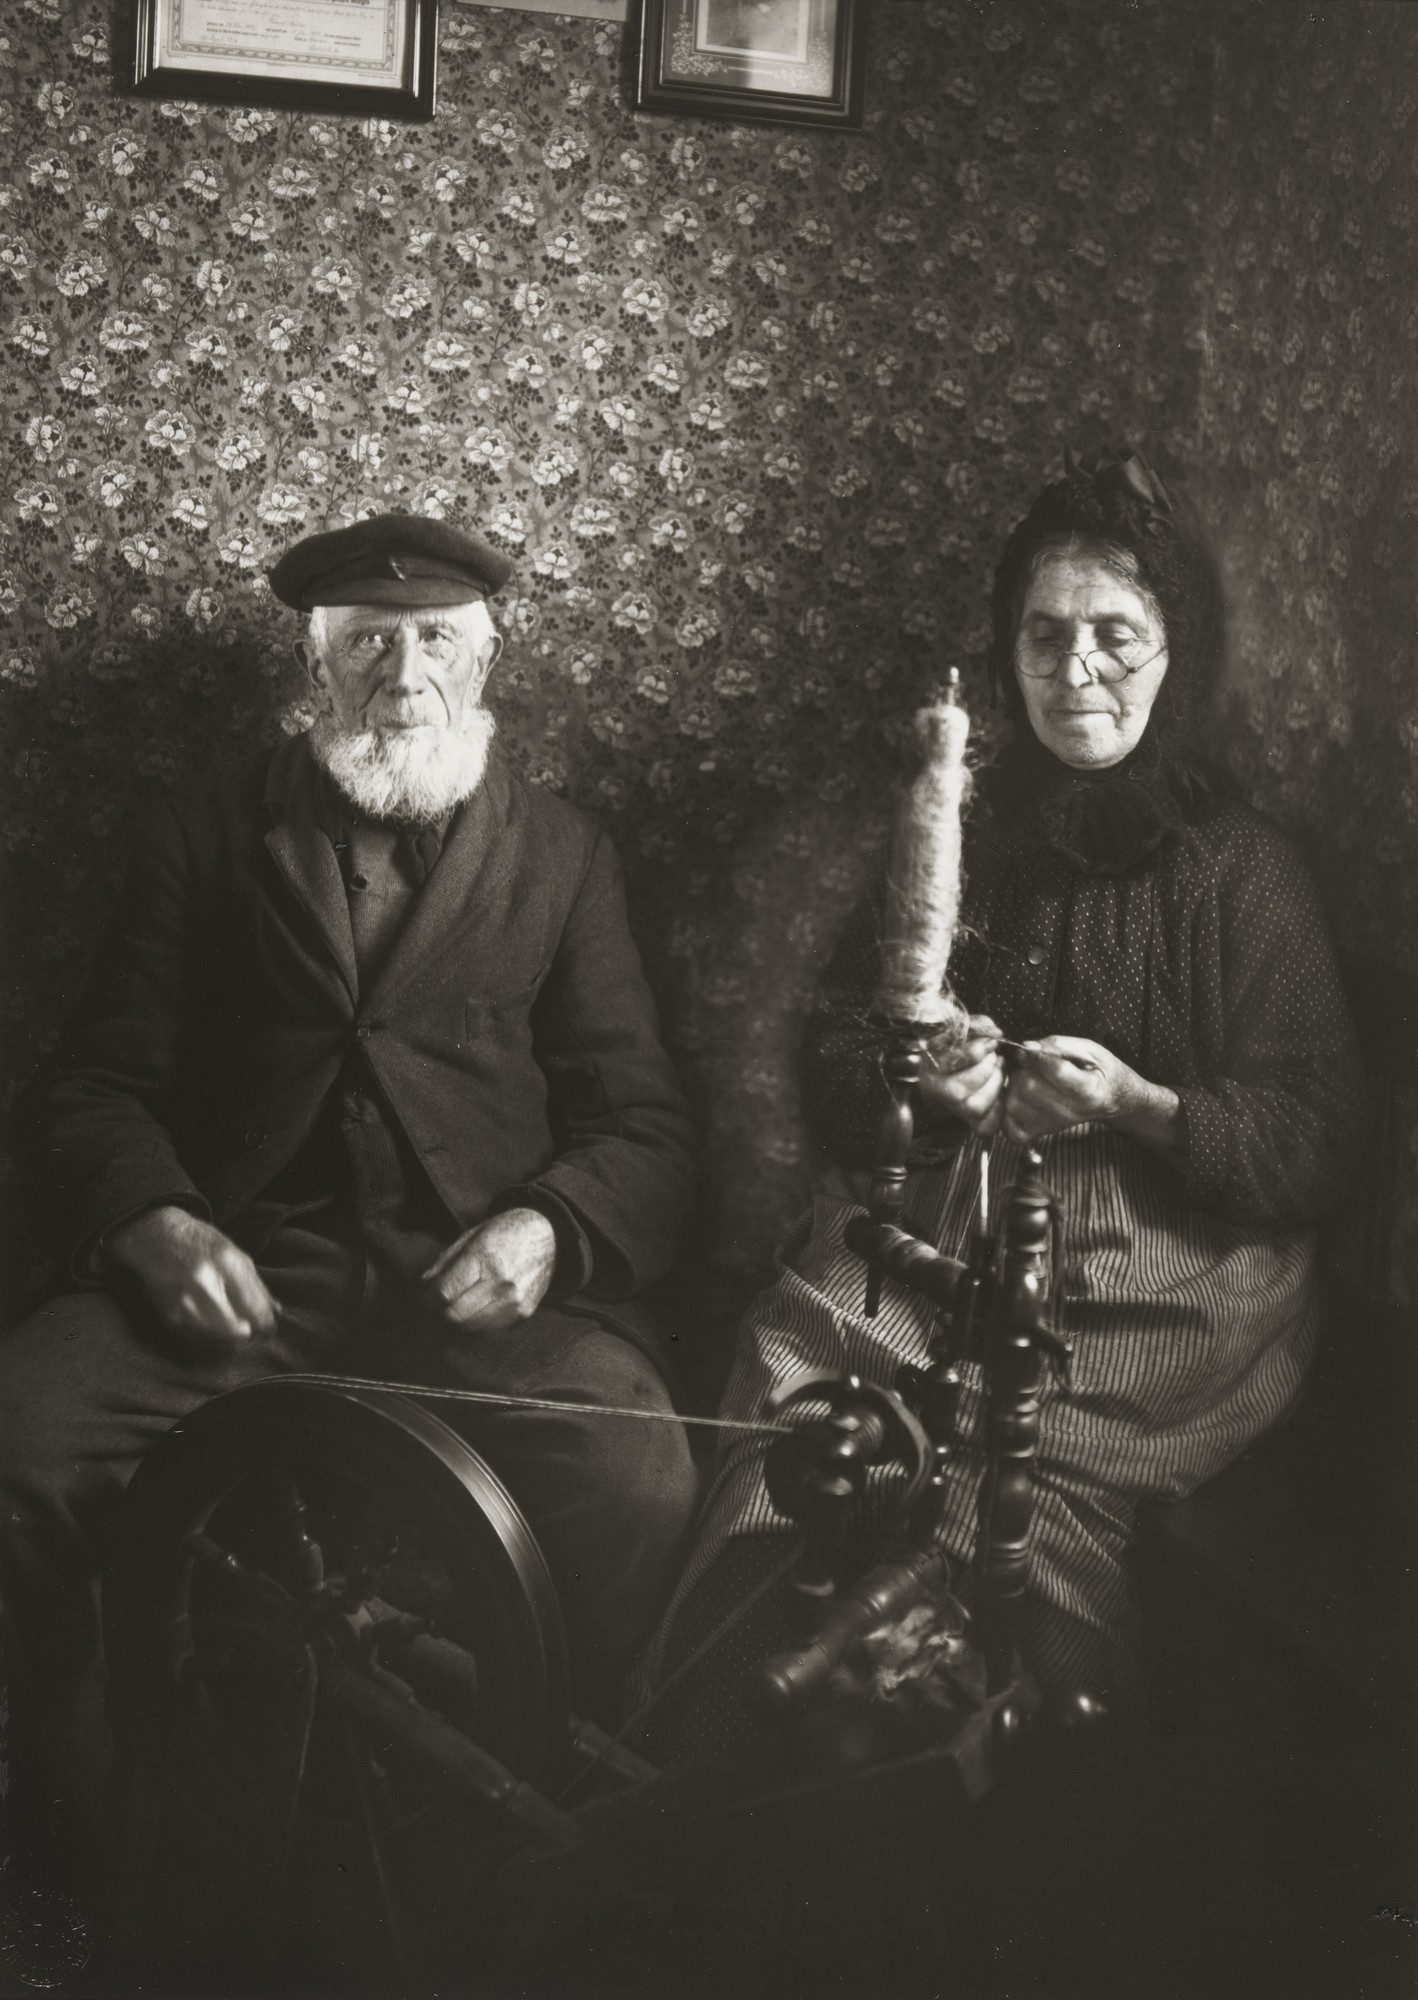 August Sander. Farm Couple Spinning. 1925-30